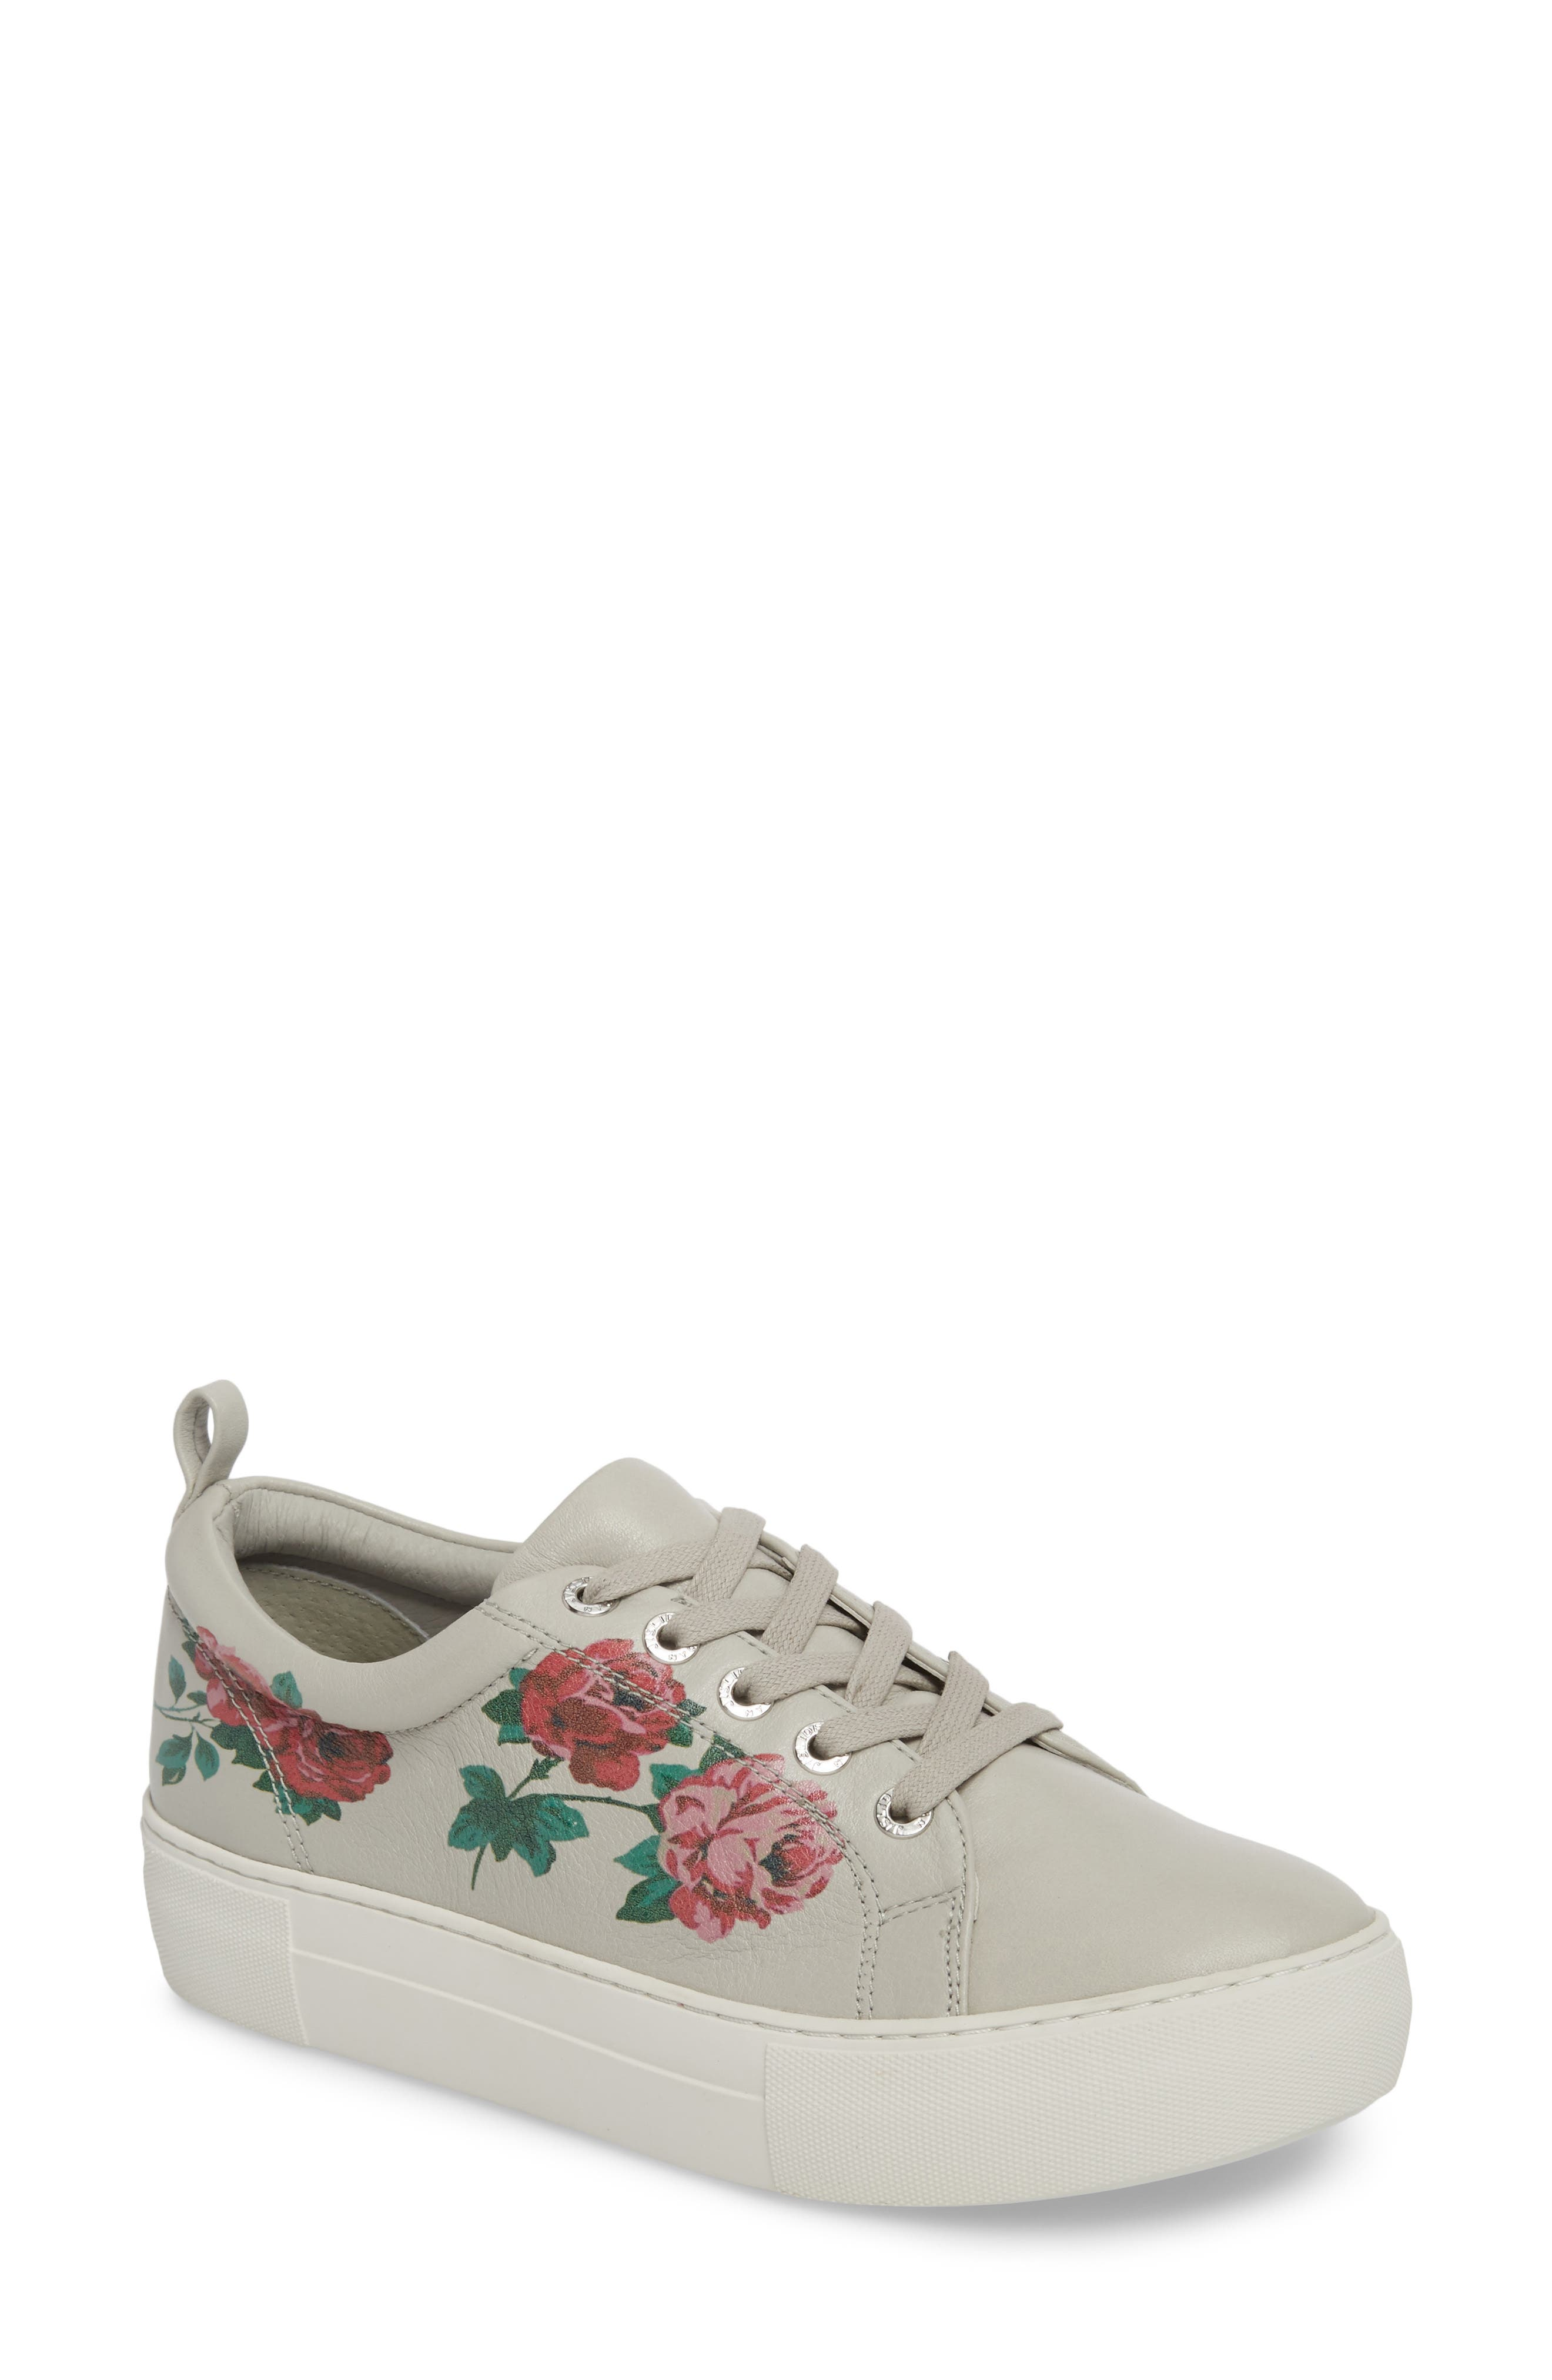 Adel Floral Sneaker,                         Main,                         color, Light Grey Leather